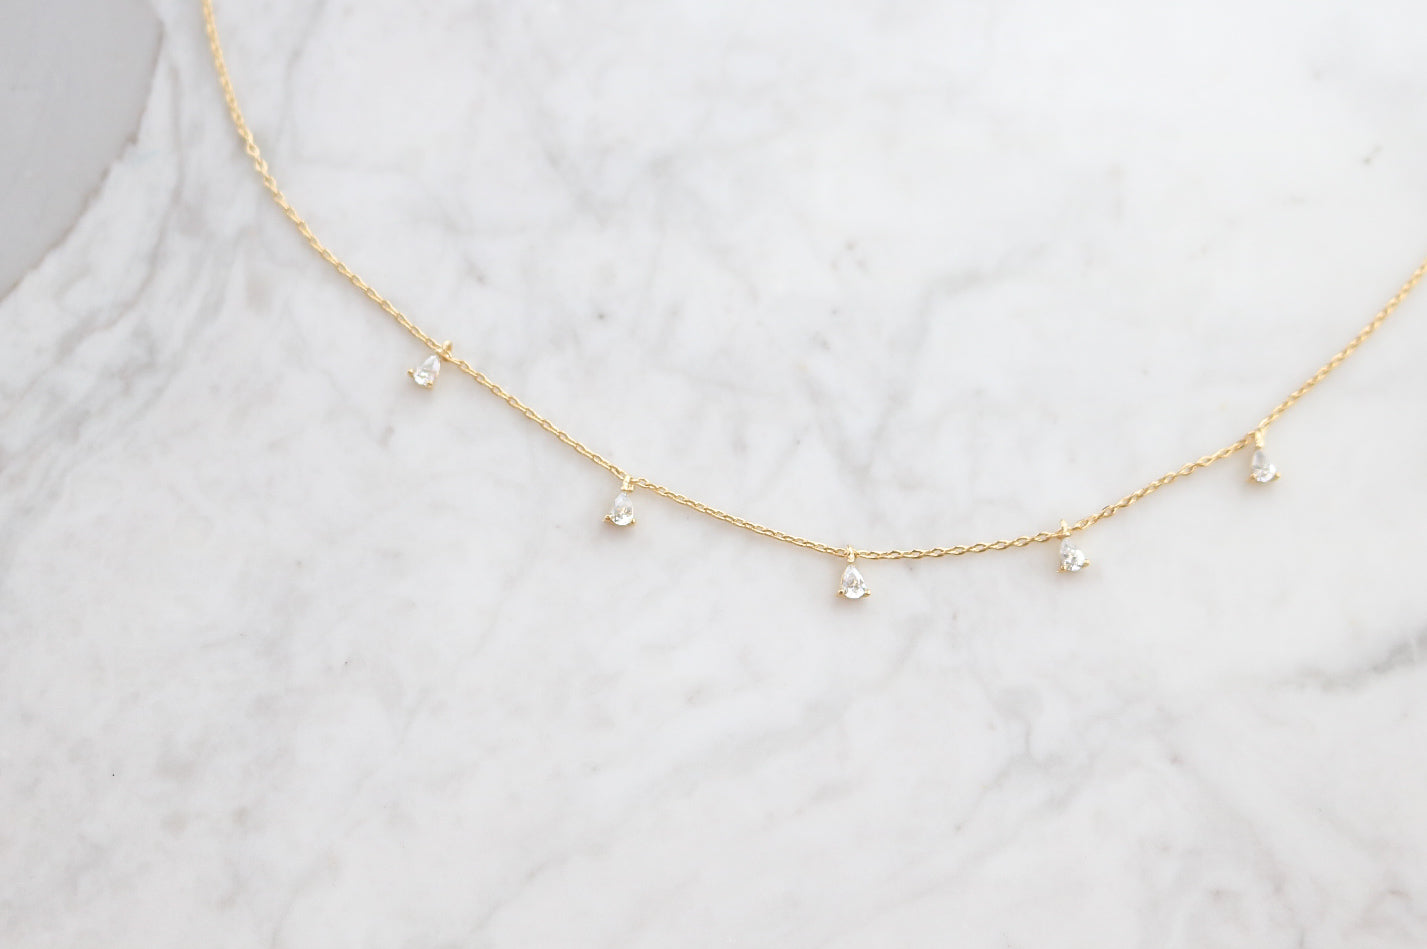 Juliette Necklace